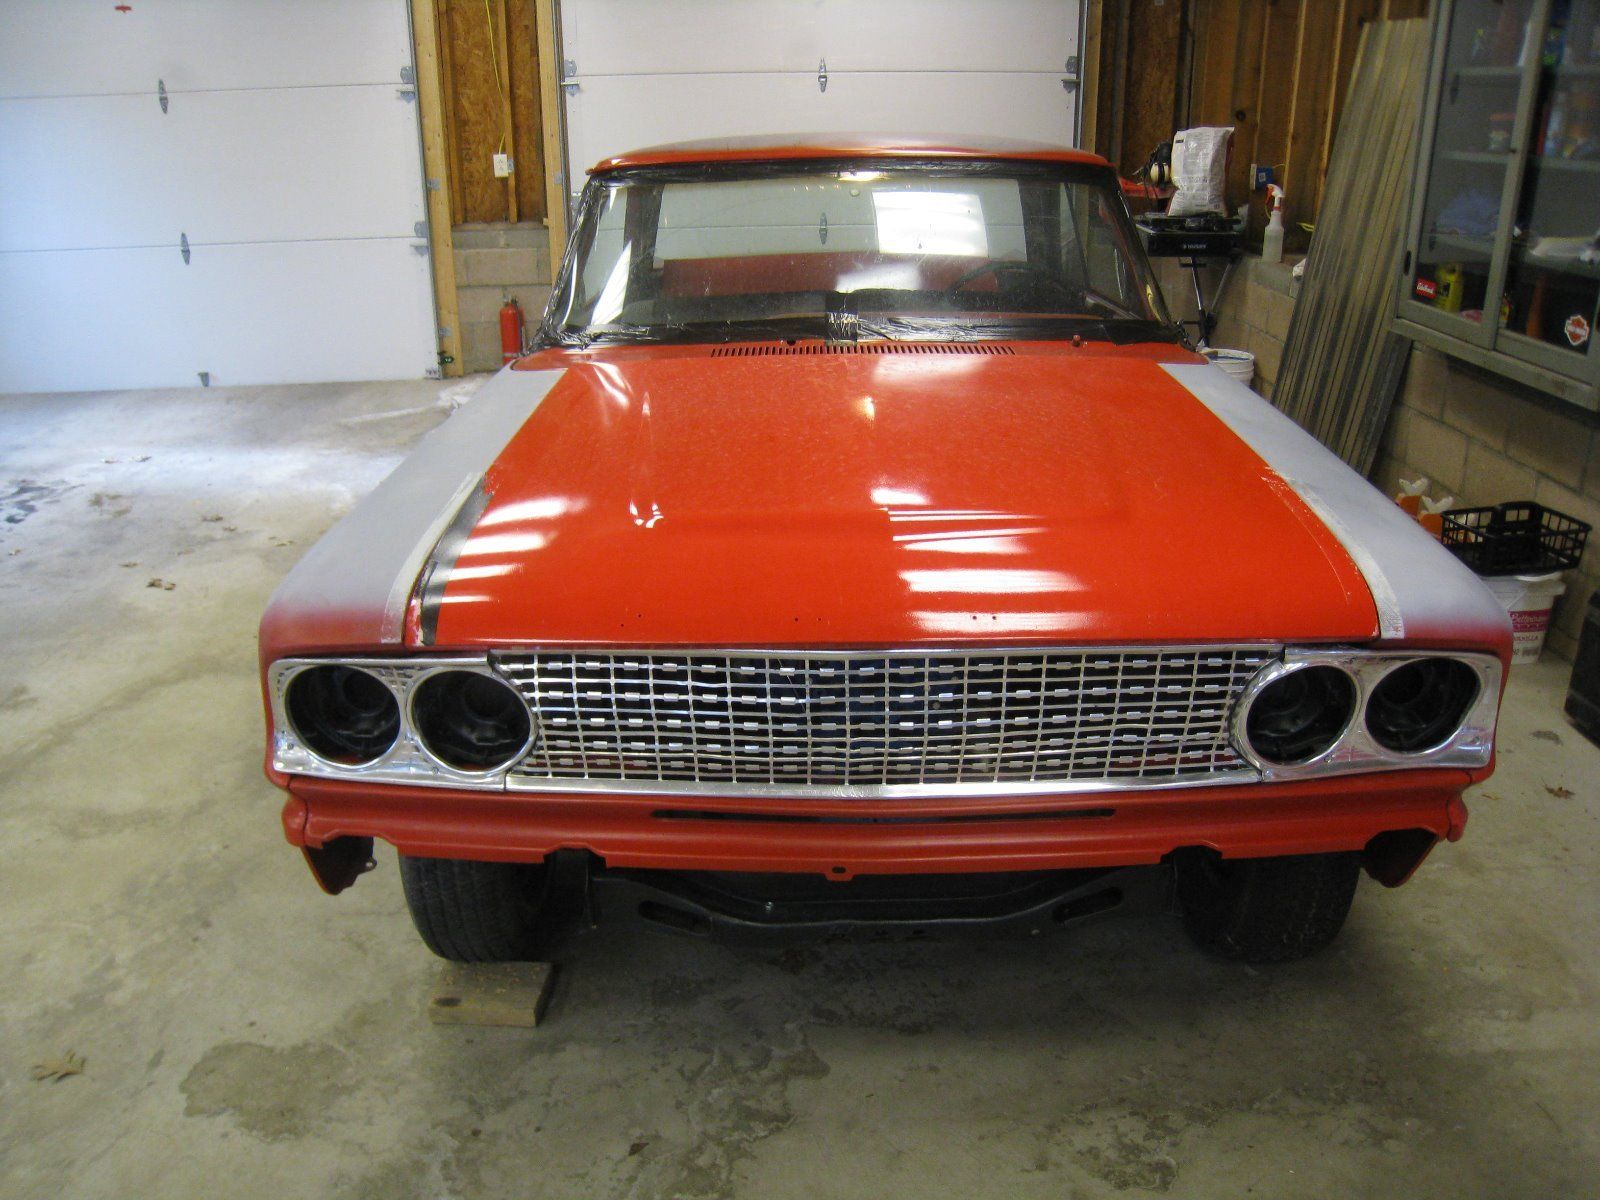 Fairlane Archives - Project Cars For Sale